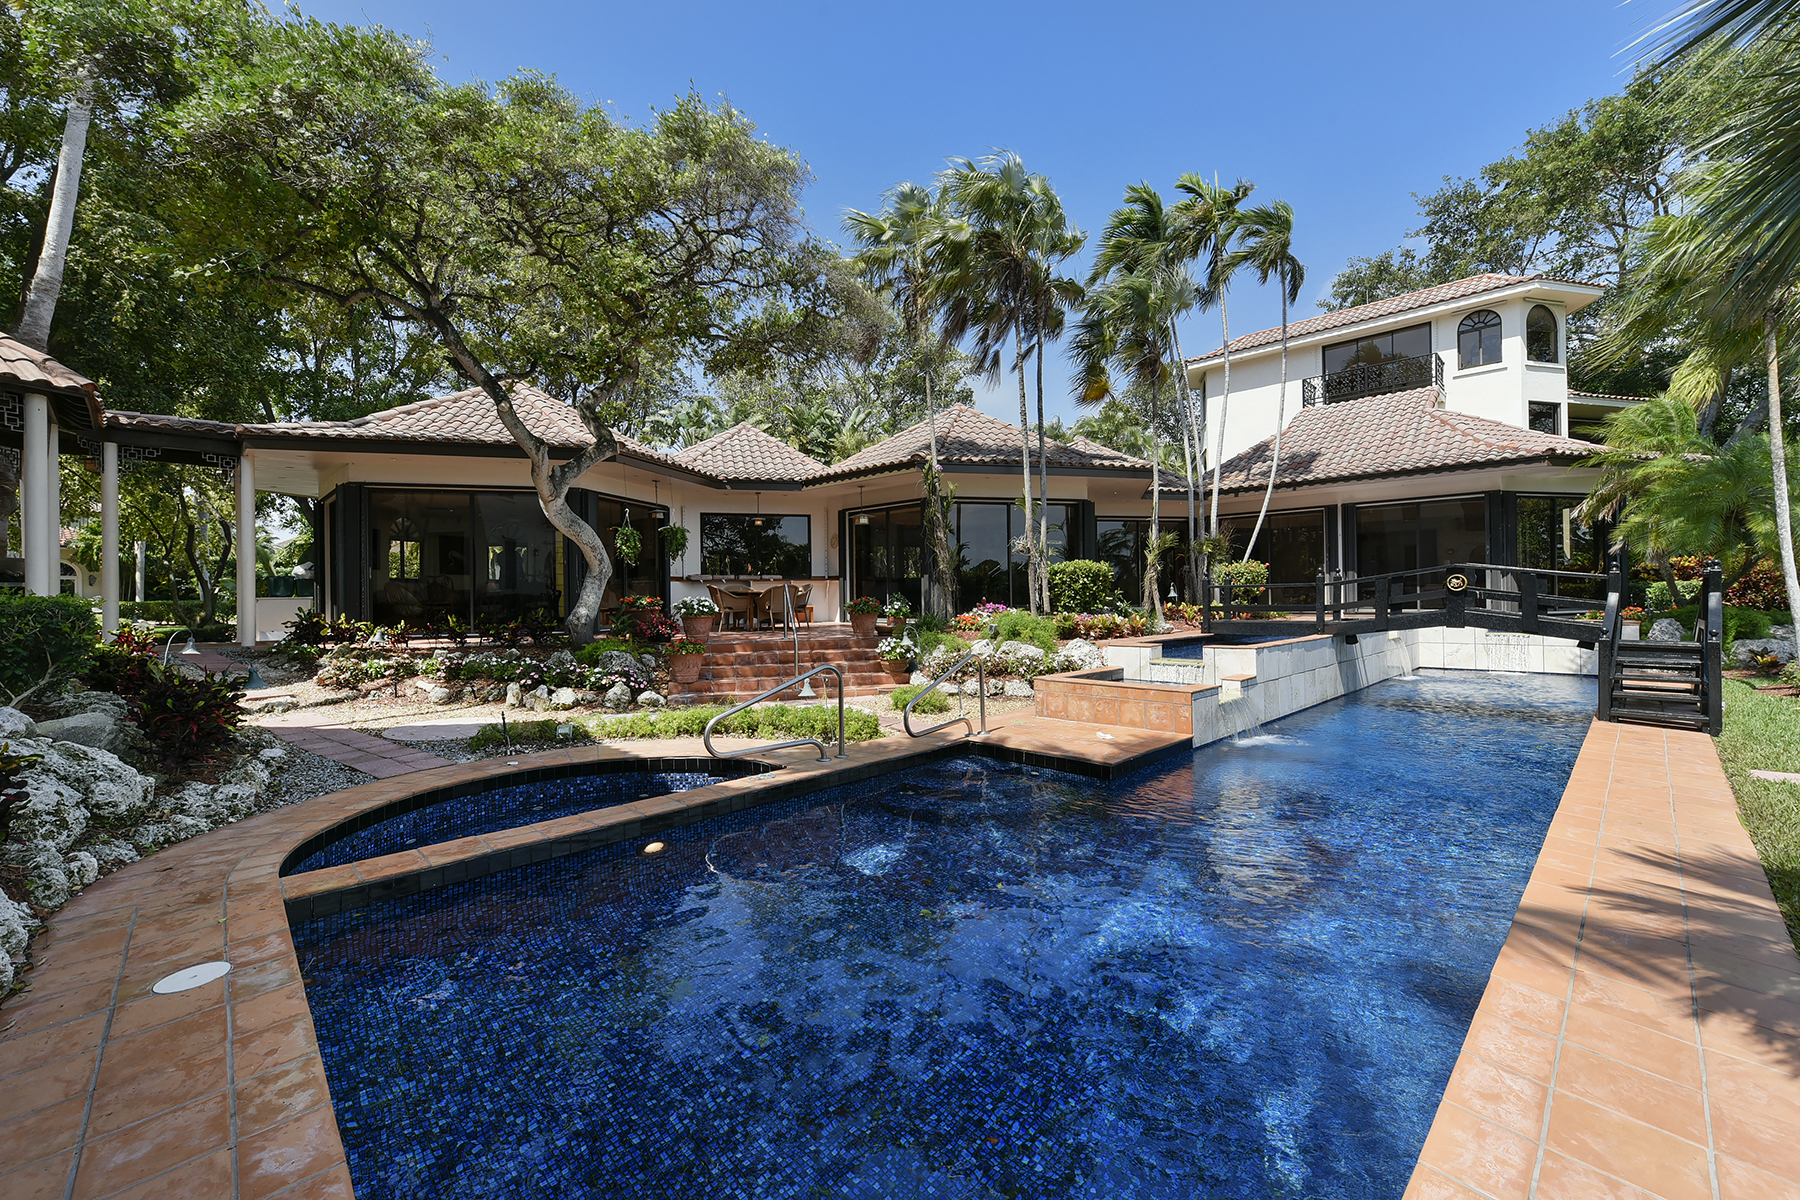 一戸建て のために 売買 アット Architecturally Stunning Waterfront Home at Ocean Reef 44 Cardinal Lane Ocean Reef Community, Key Largo, フロリダ, 33037 アメリカ合衆国